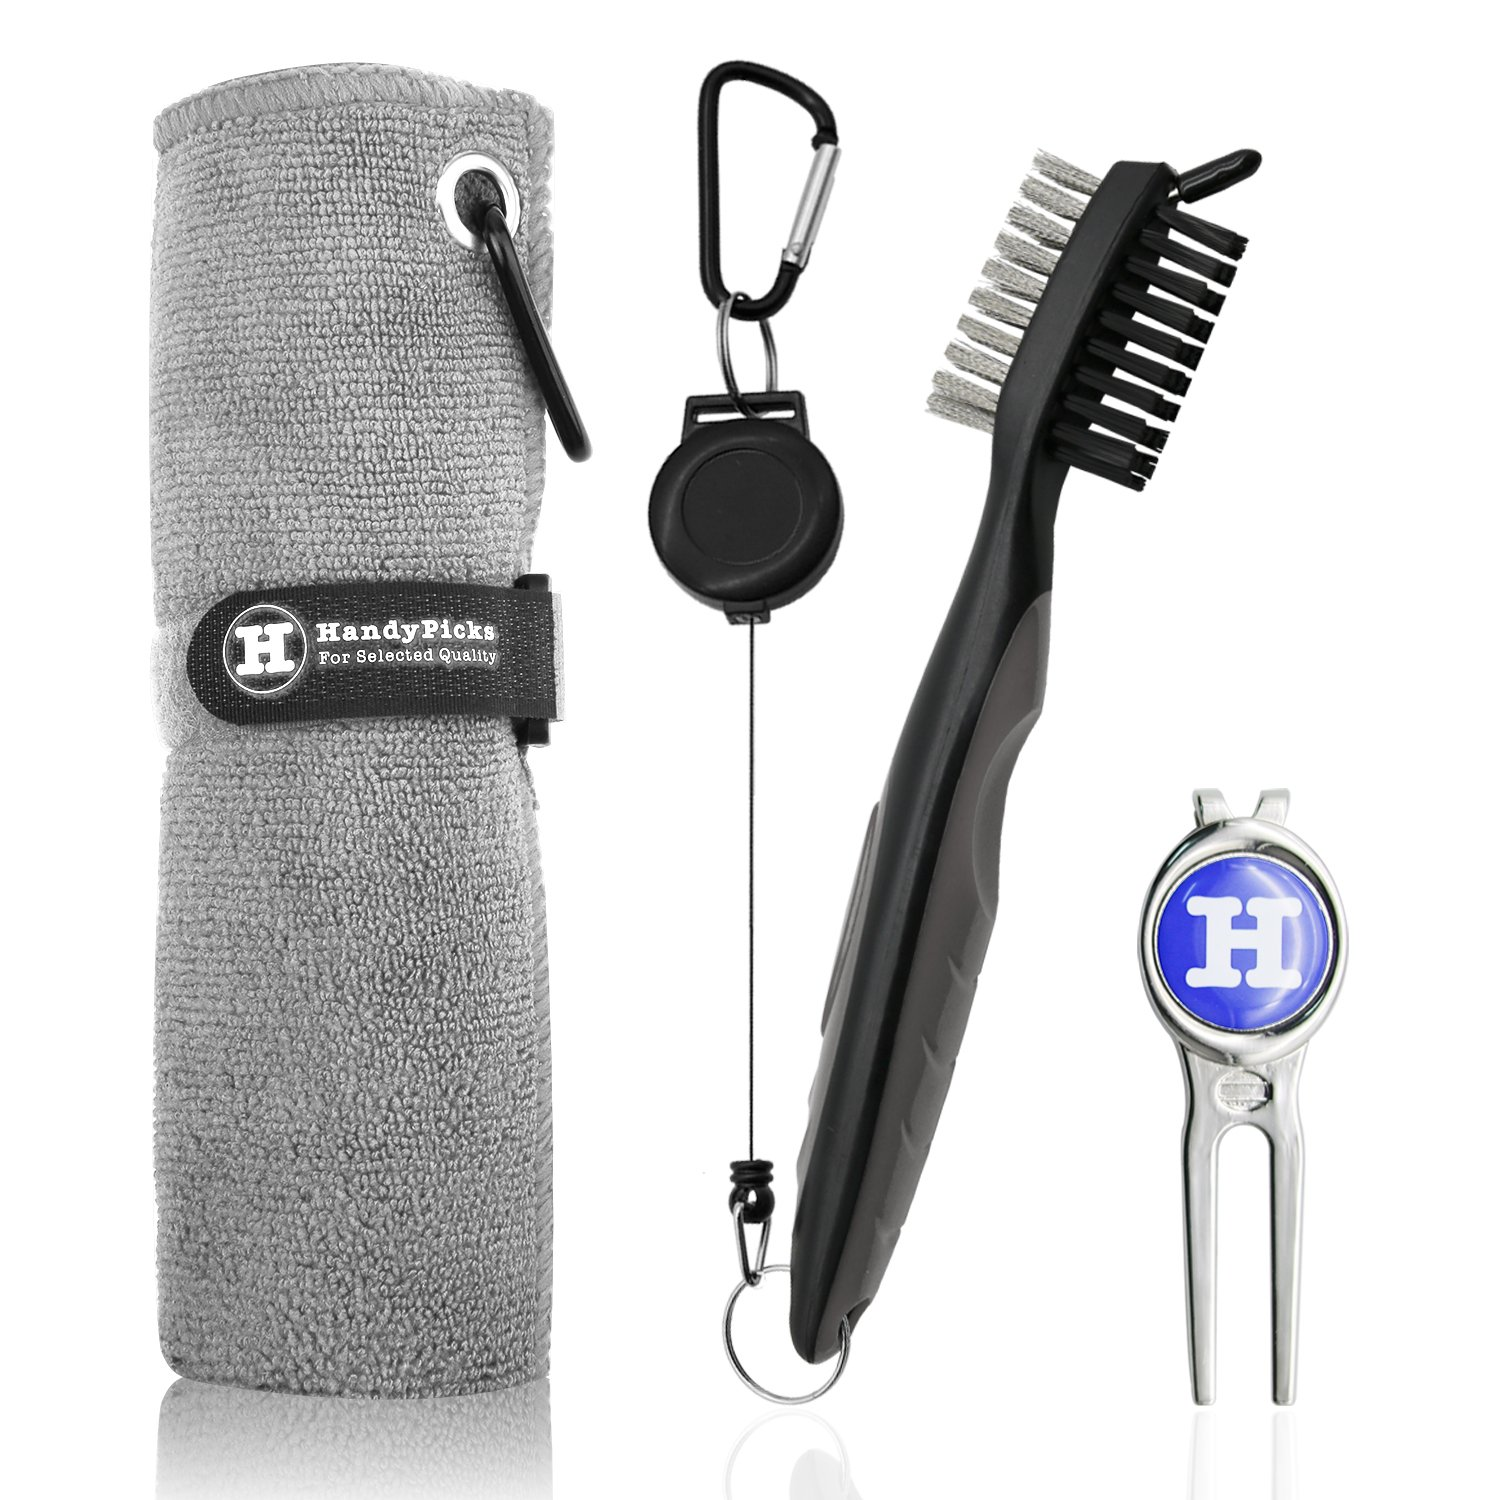 Handy Picks Microfiber Golf Towel (16'' X 16'') with Carabiner, Club Brush, Golf Divot Repair Tool with Ball Marker - Golf Accessories, Ideal for Golfers - 3 in 1 Golf Cleaning Kit (Pack of 3, Grey)